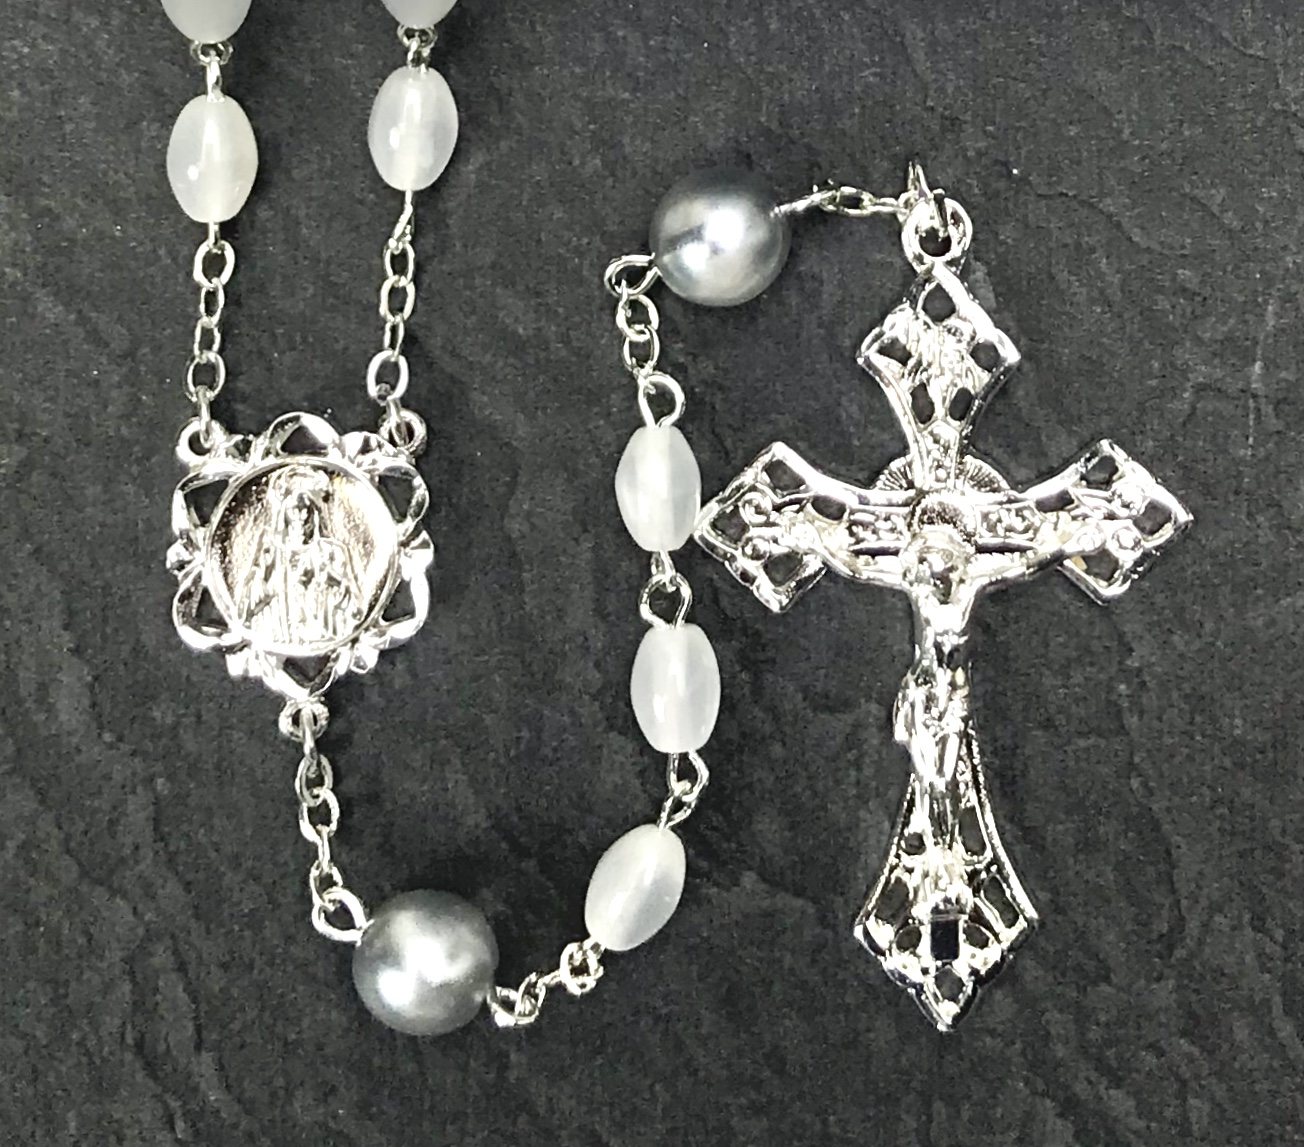 6x8mm PEARL WITH SILVER O.F. BEADS STERLING SILVER PLATE ROSARY BOXED